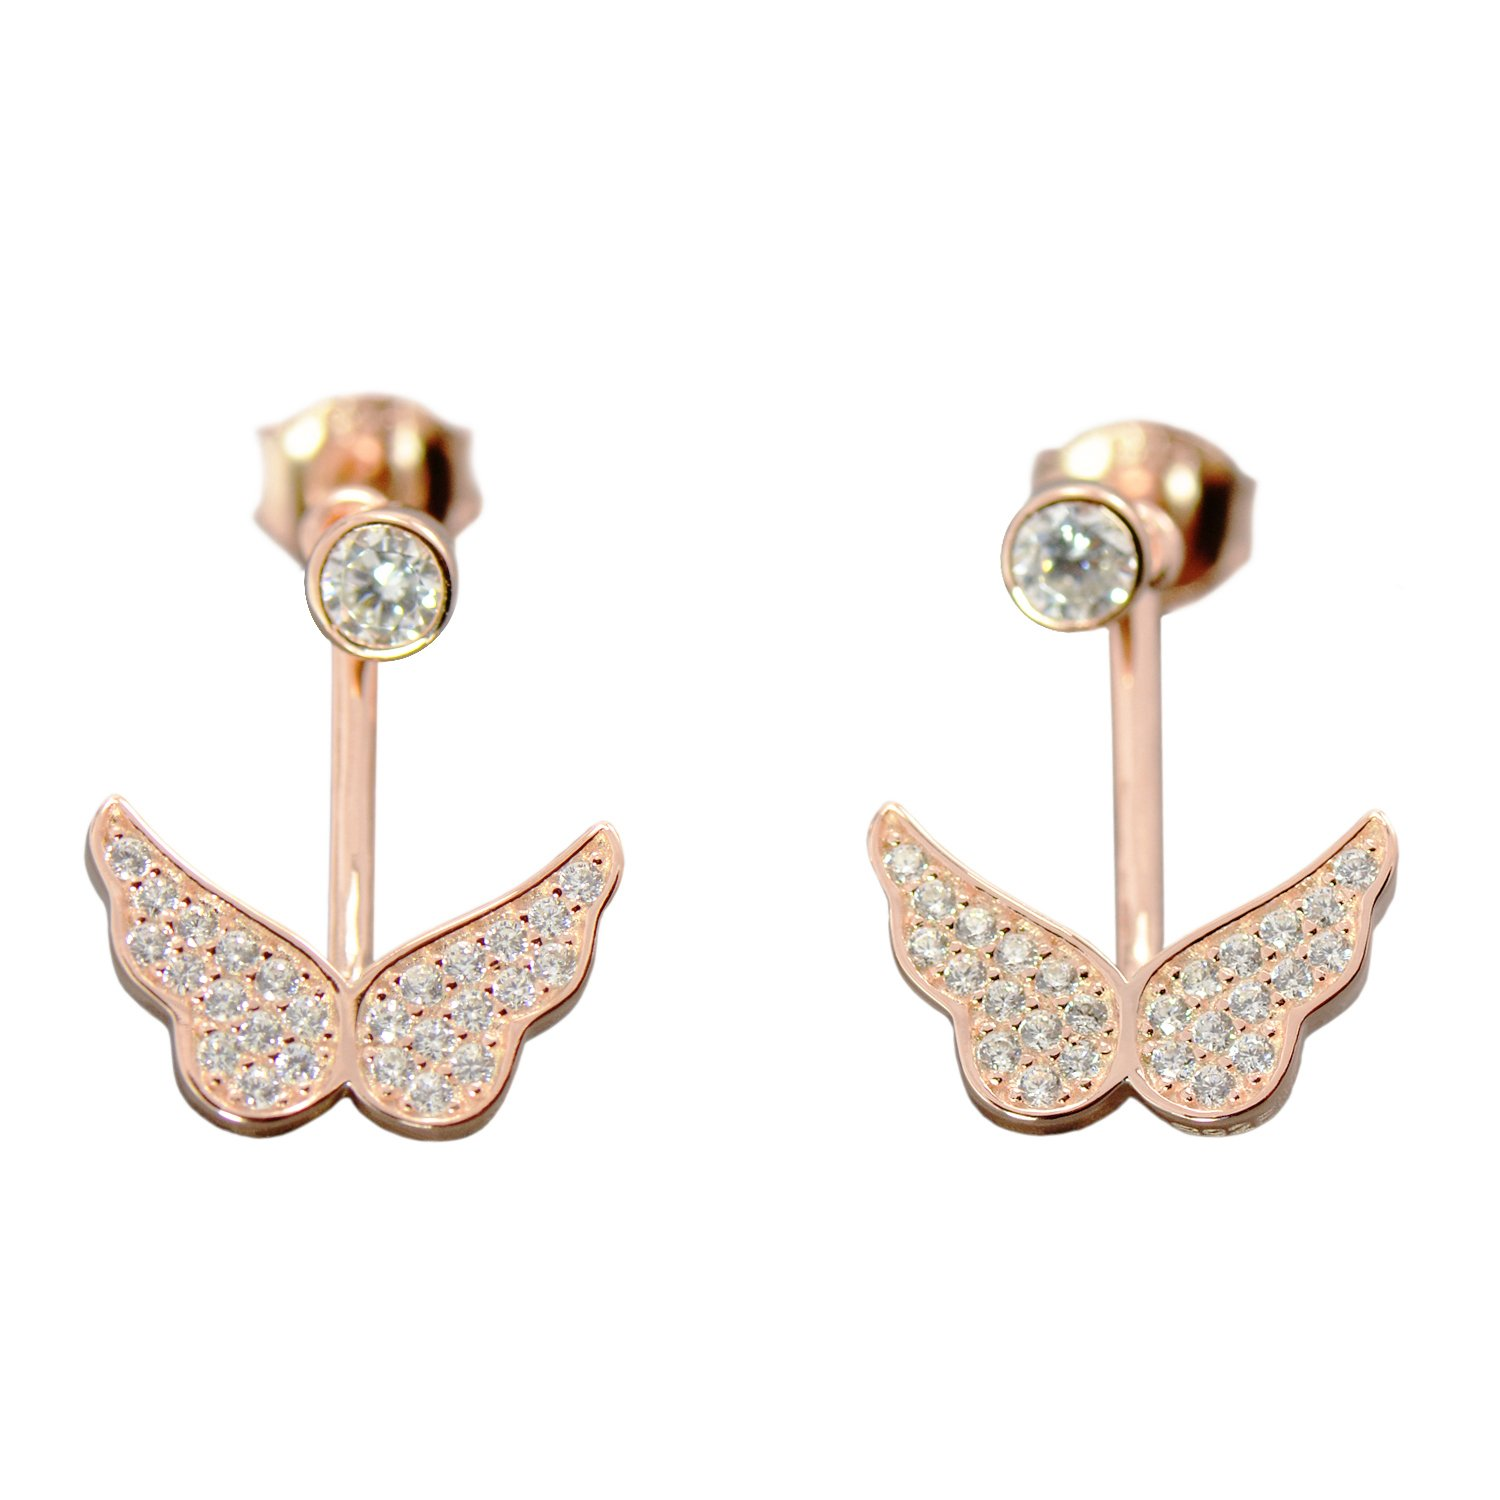 Paialco 925 Sterling Silver Flying Wings Dangle Stud Earrings, Rose Gold Plating